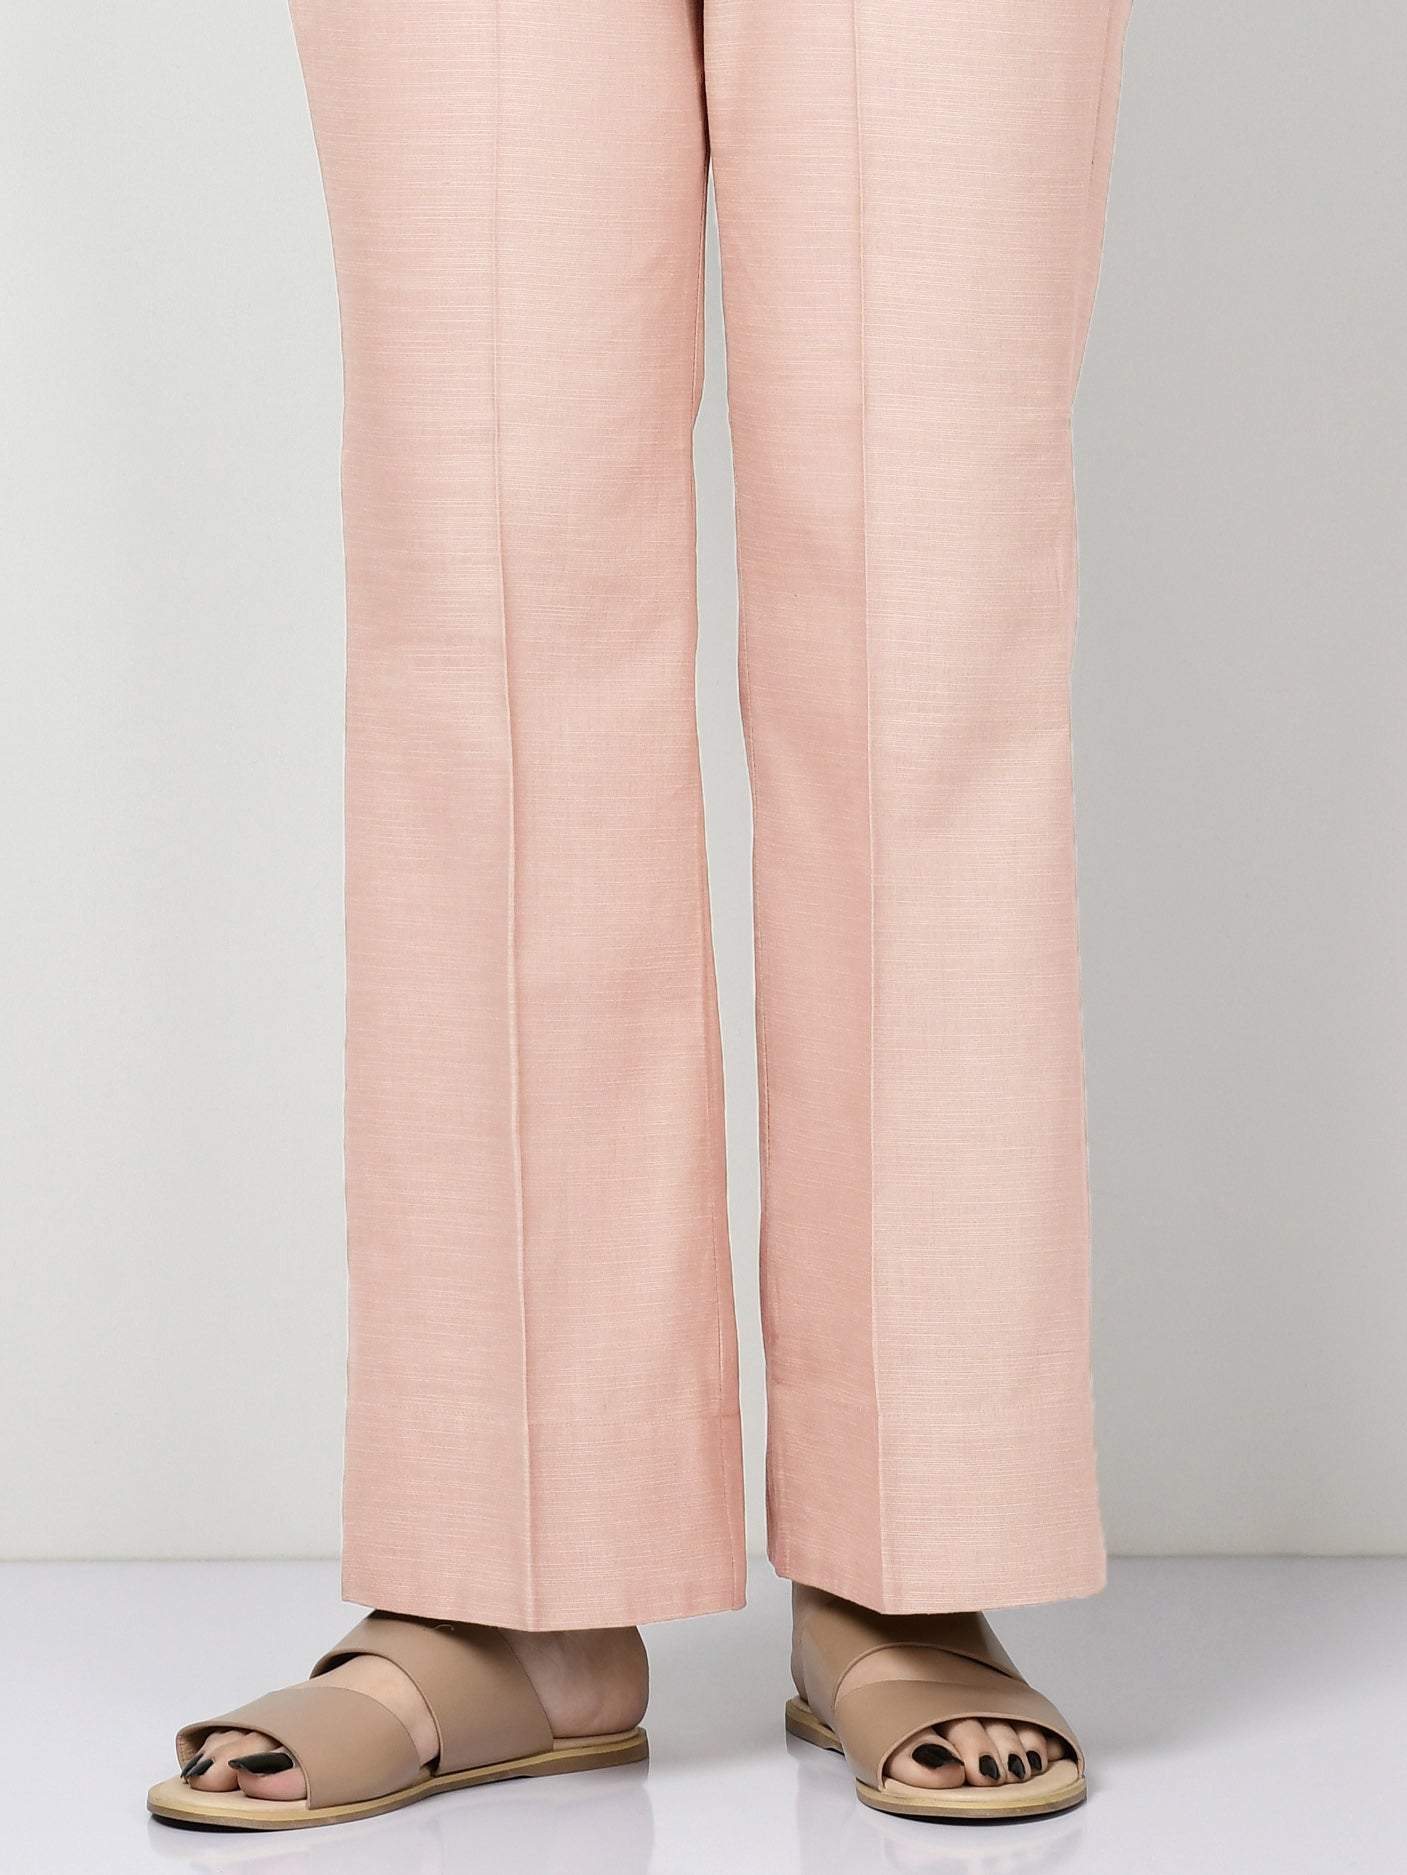 Unstitched Khaddar Trouser - Tea Pink